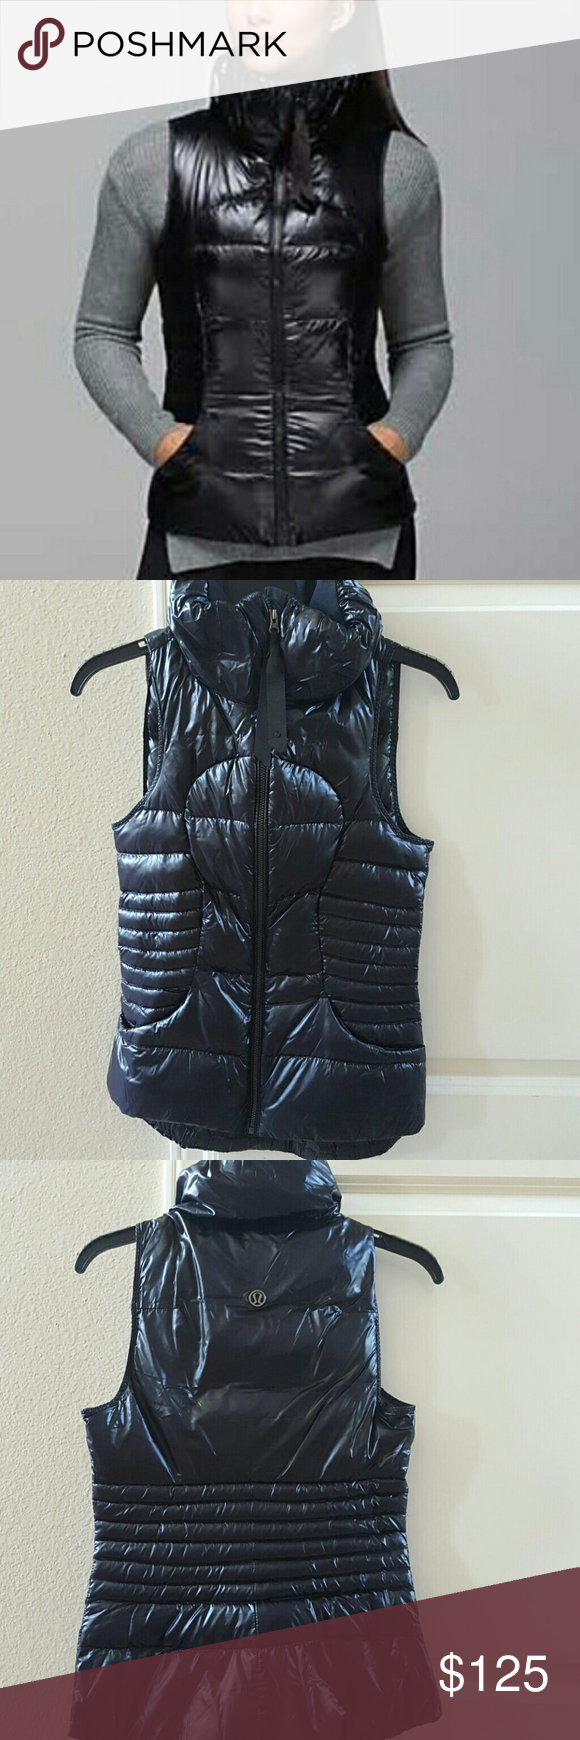 Lululemon Fluffin Awesome Vest Worn less than a handful of times. EUC. Rip tag removed for comfort. Very fashion forward and versatile. Own this! lululemon athletica Jackets & Coats Vests